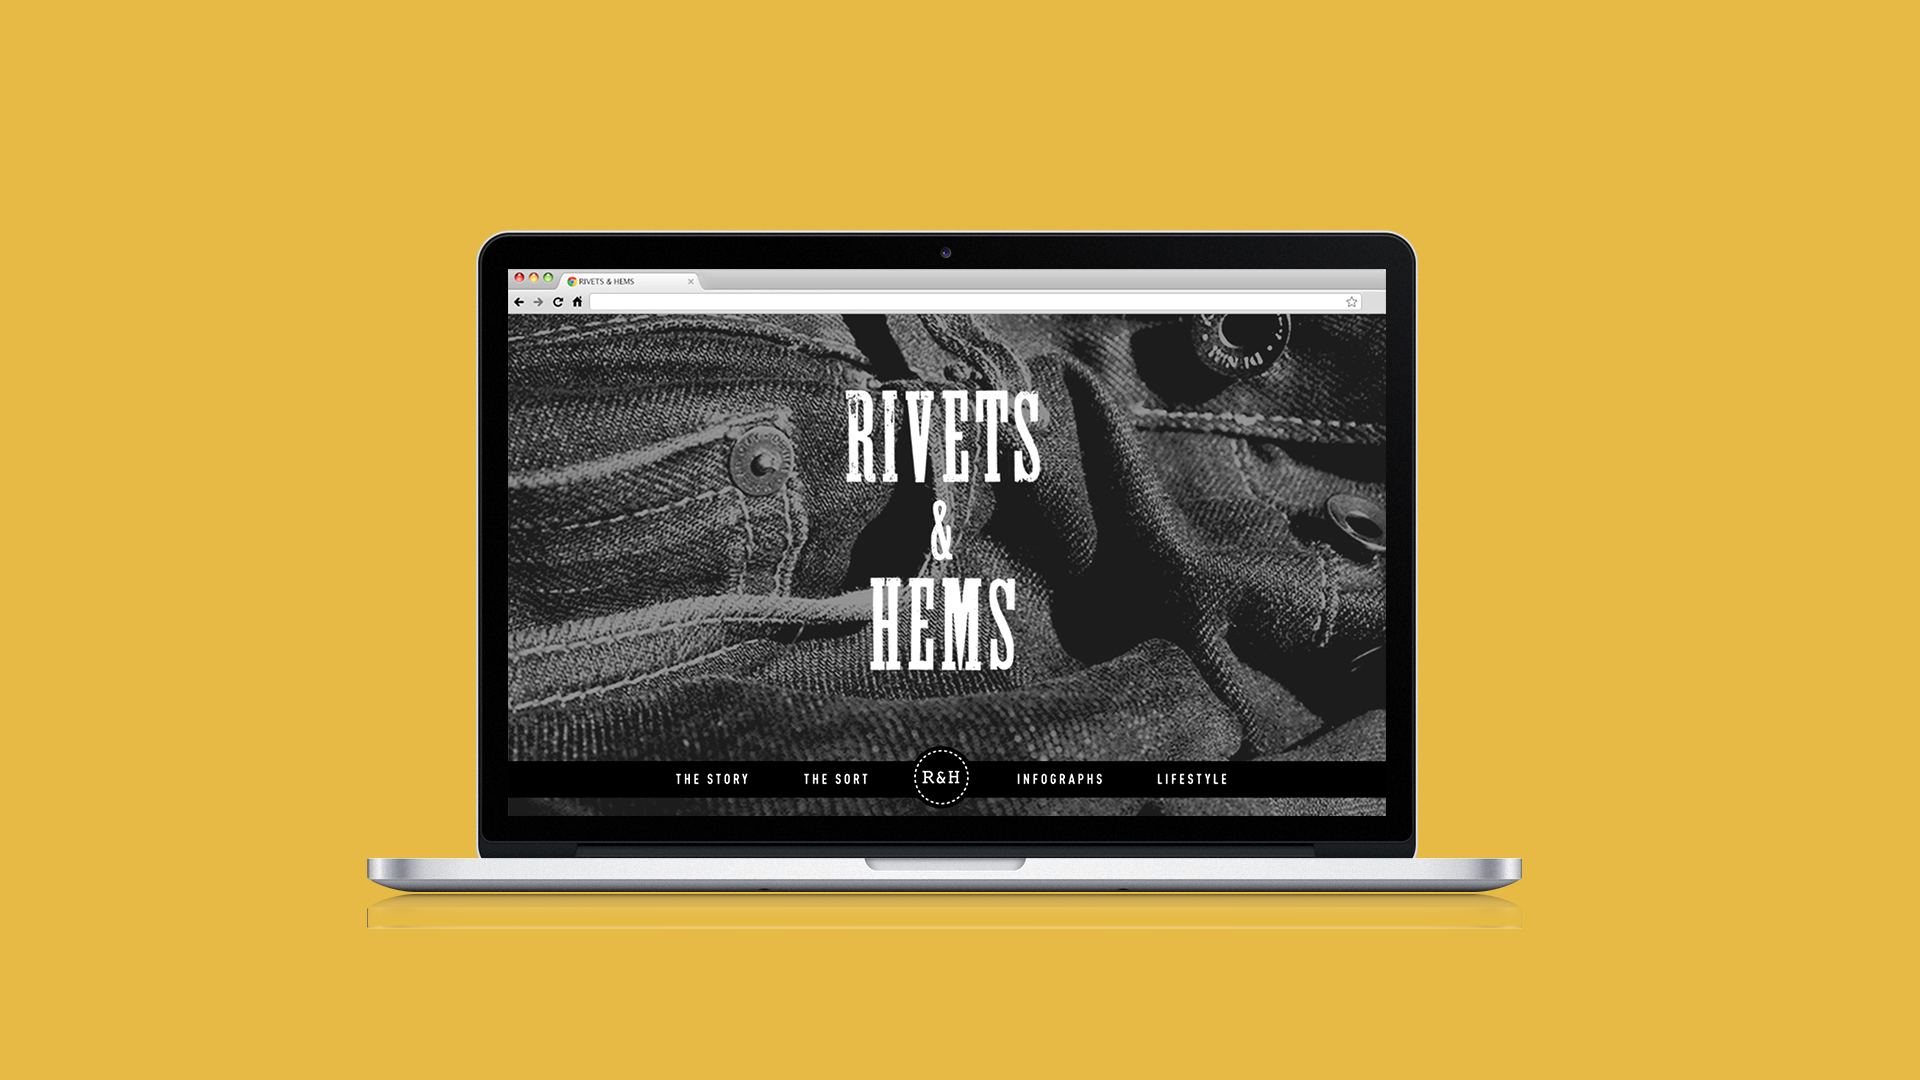 Rivets & Hems: Online Pants Collection Exhibition